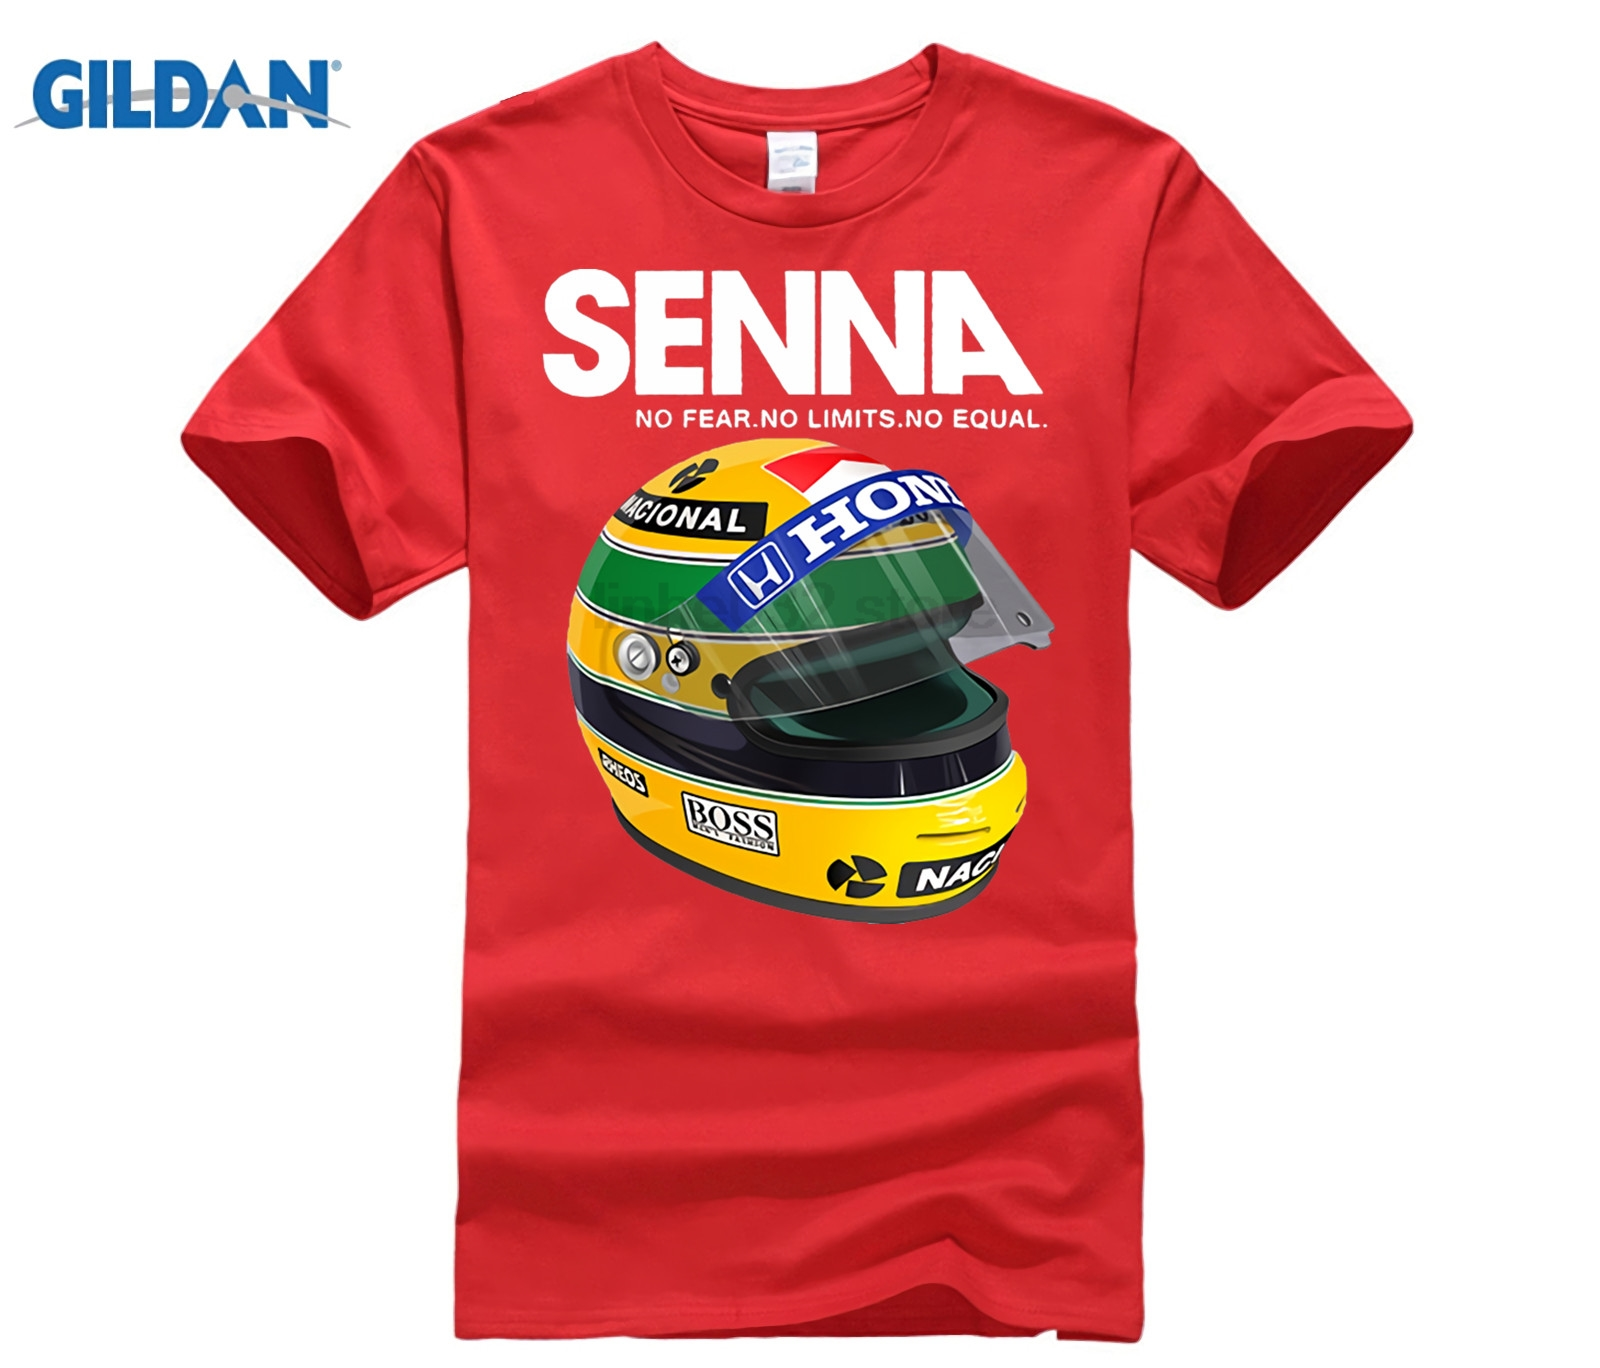 gildan-ayrton-font-b-senna-b-font-helmet-tee-tops-clothing-1-race-car-man-crew-neck-short-sleeve-t-shirt-popular-man-big-size-t-shirt